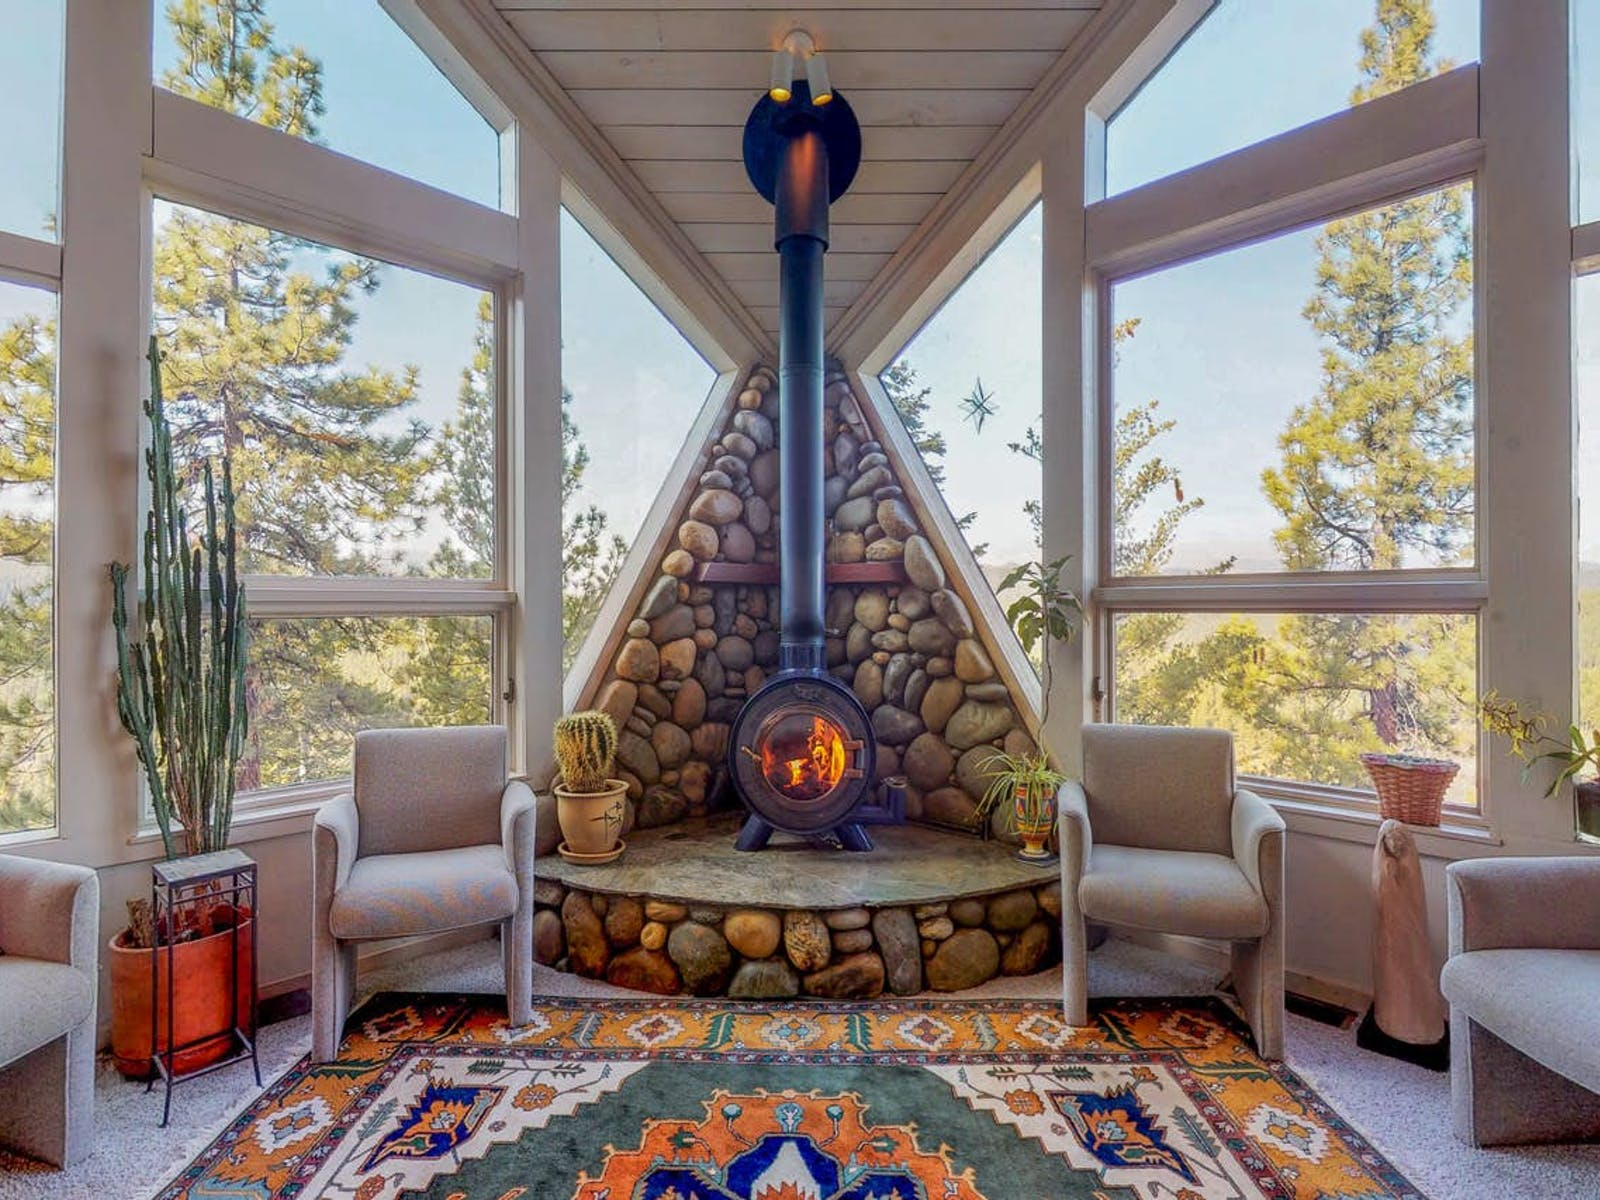 Beautifully decorated living area of Truckee cabin with stone fireplace, cactus, and a bold rug overlooking with large picturesque windows